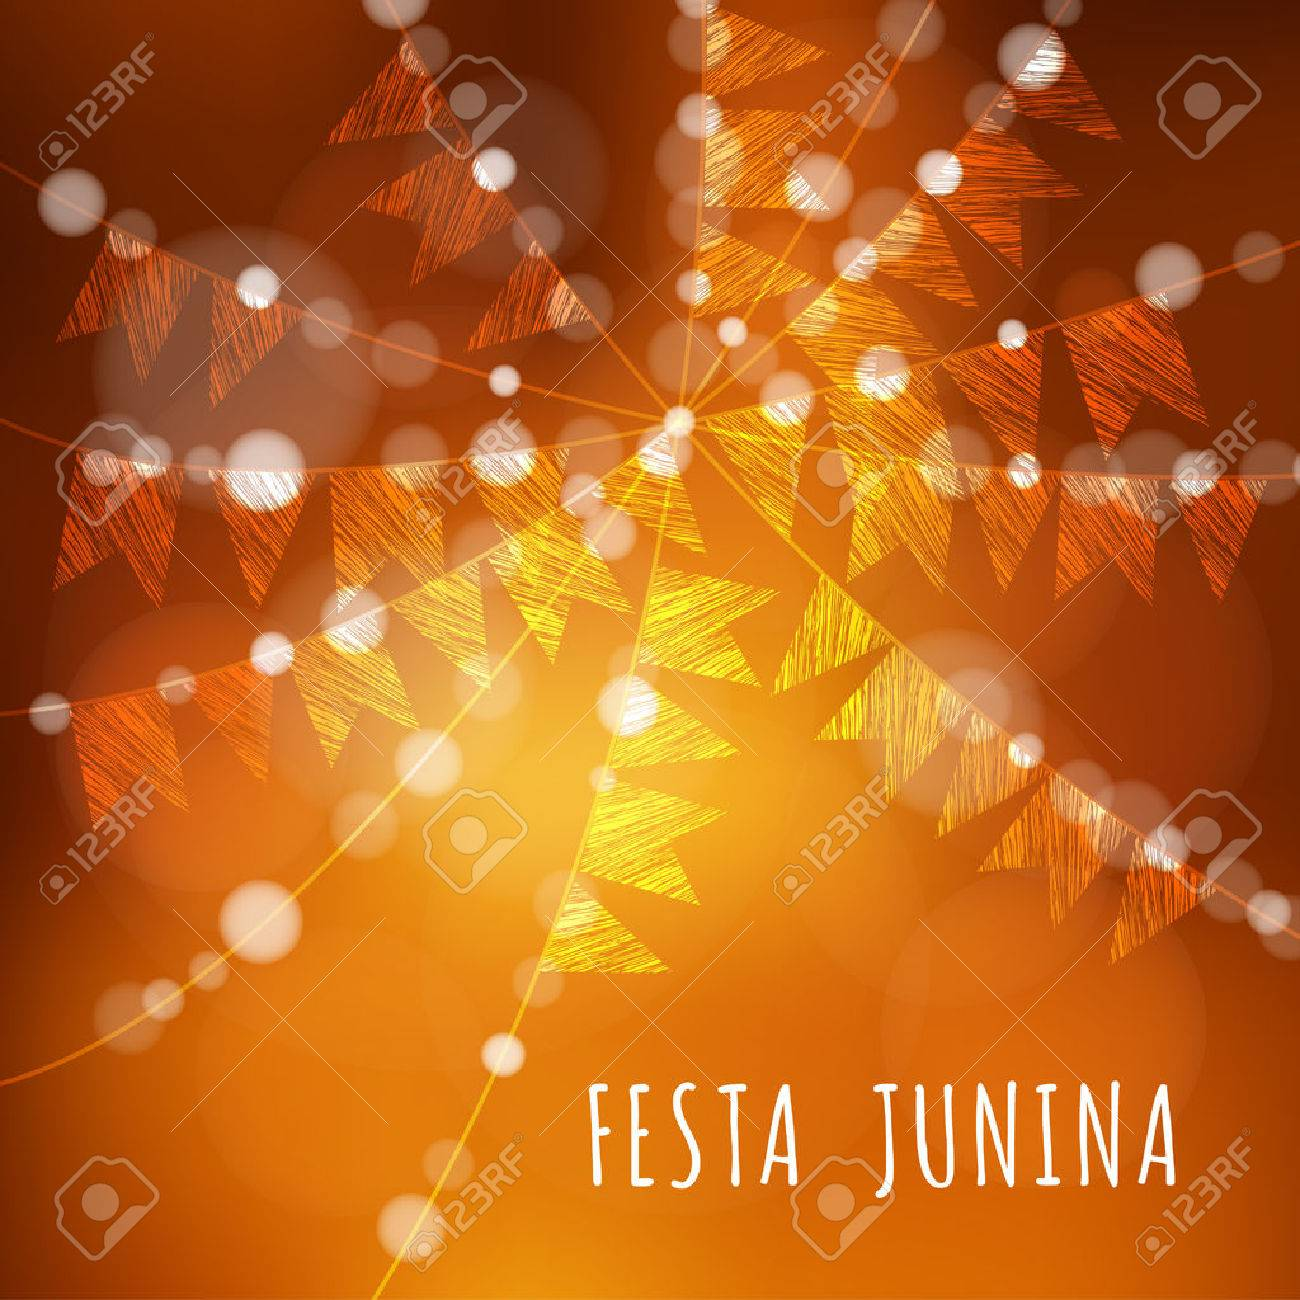 Brazilian june party, vector illustration background with garland of lights and flags - 42122532